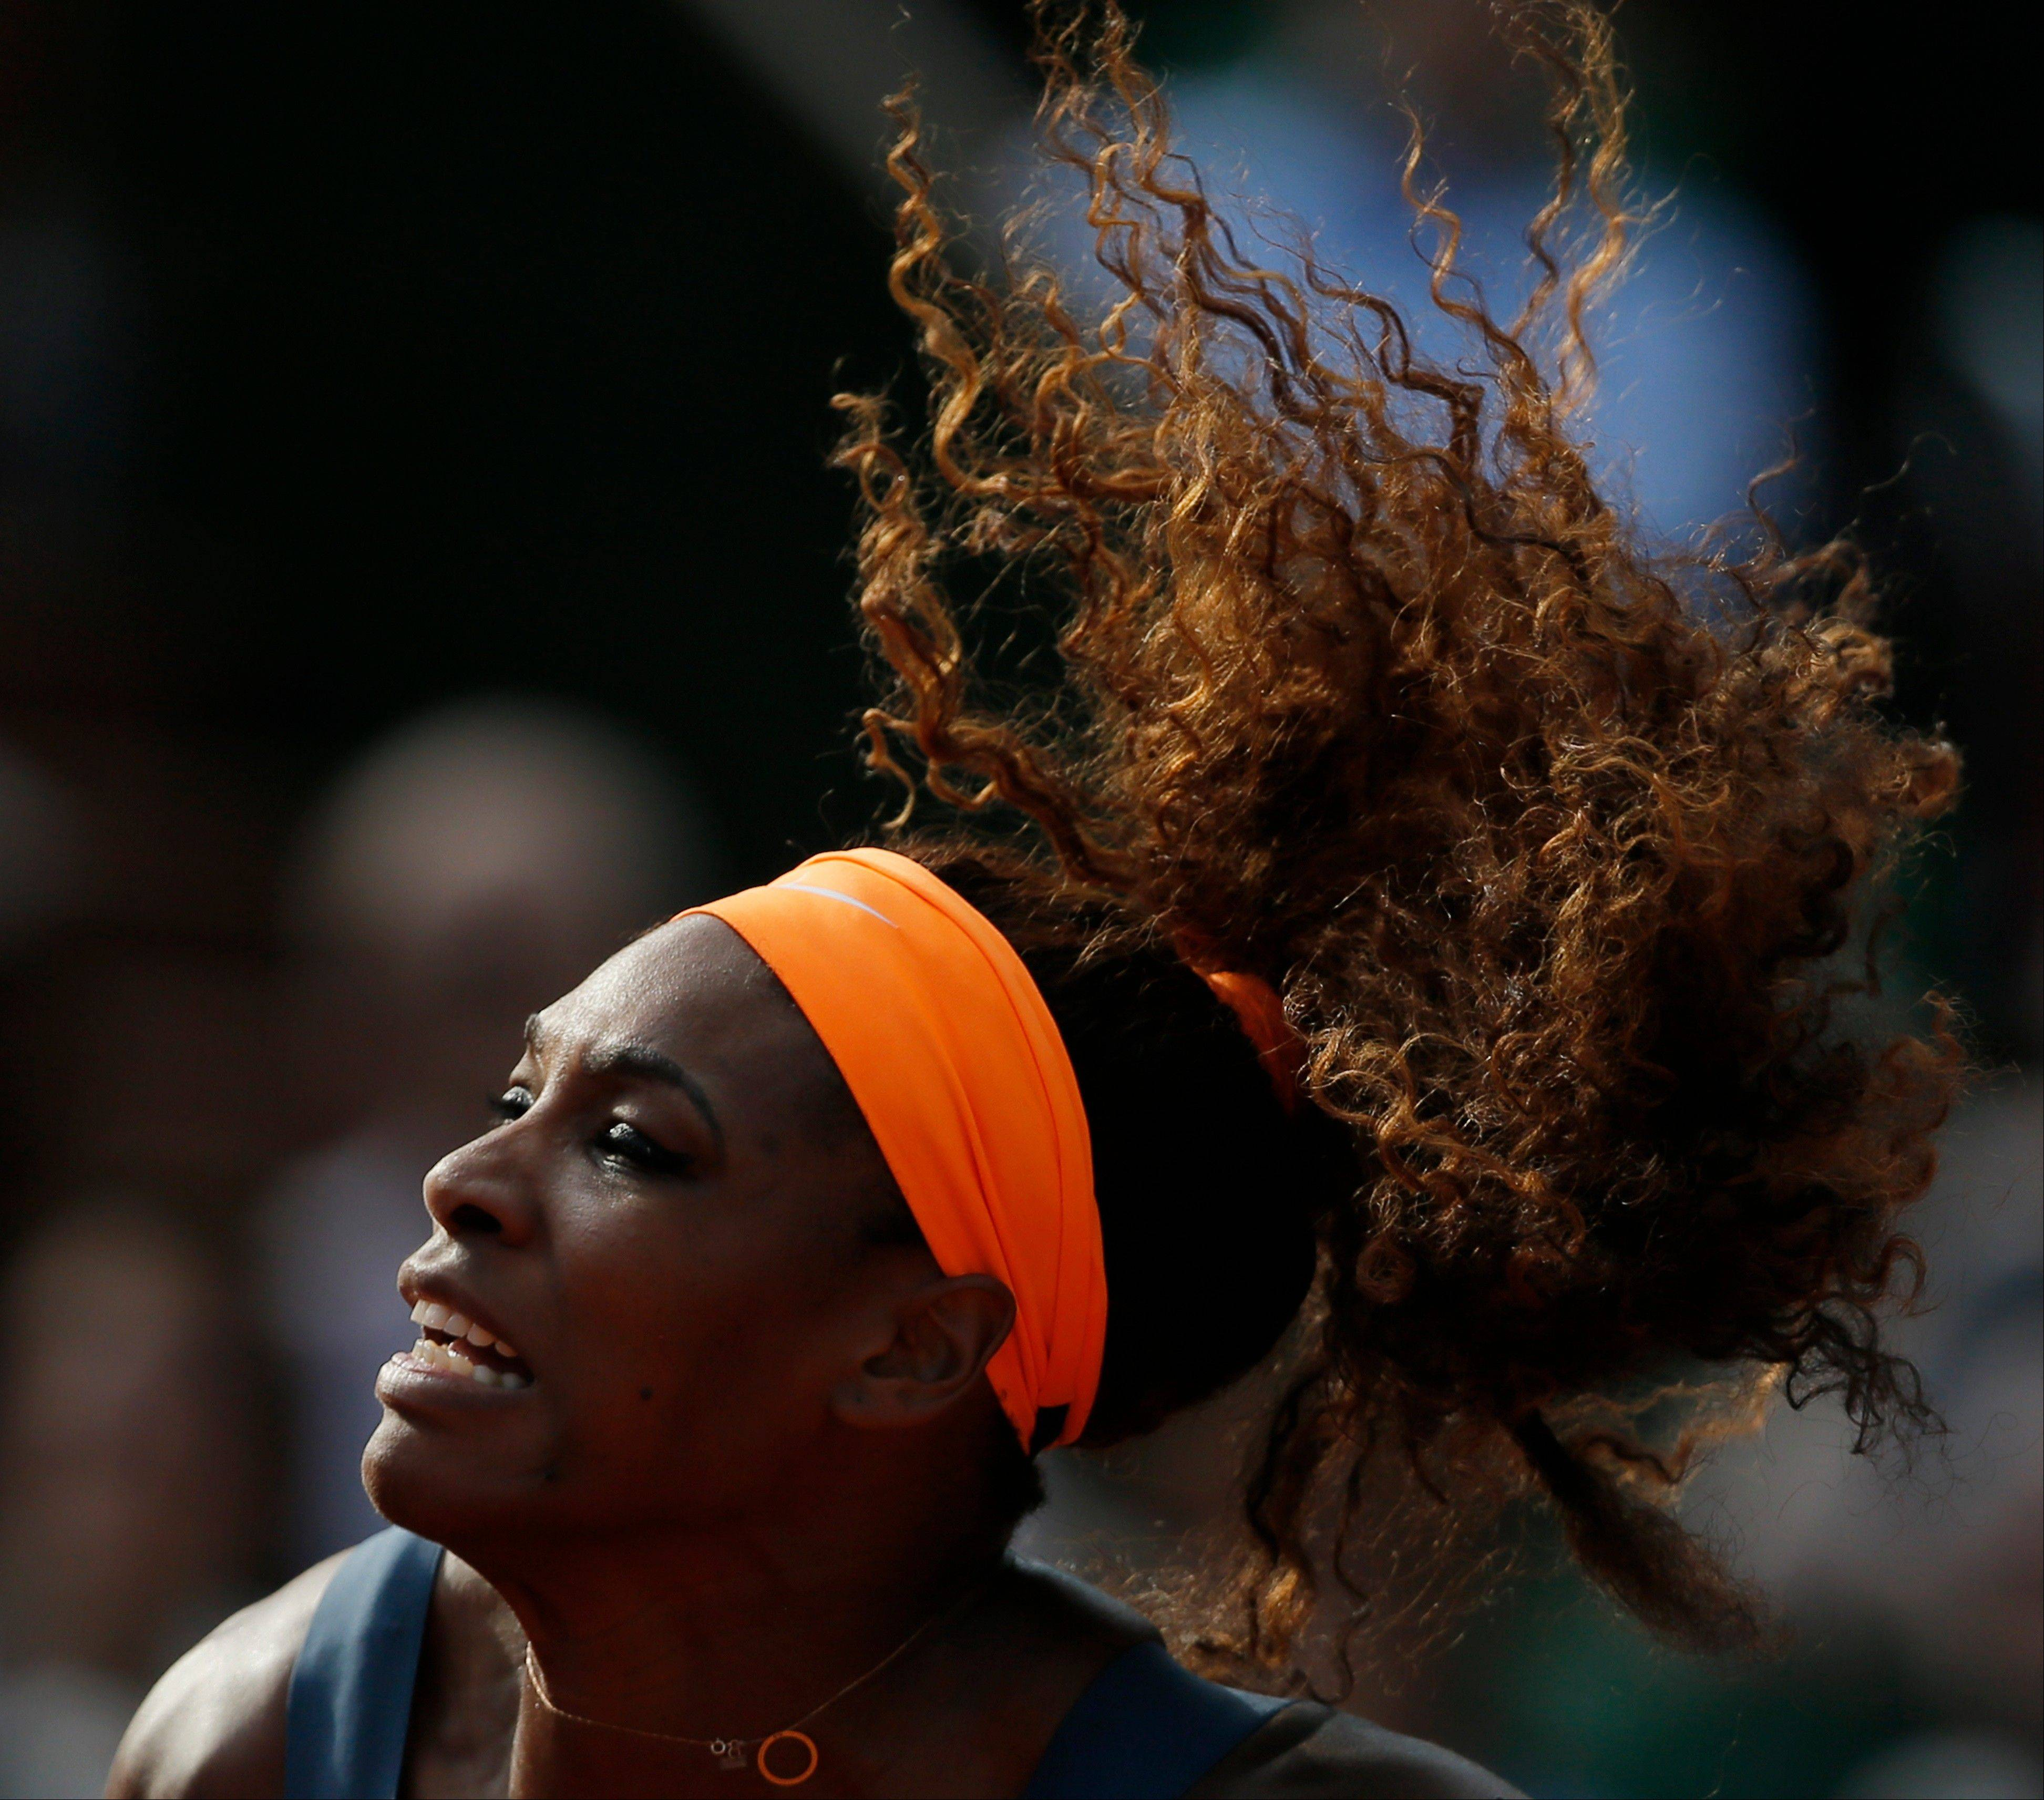 Serena Williams serves Thursday against Italy's Sara Errani, defeating Errani in two sets 6-0, 6-1, in their semifinal match at the French Open tennis tournament at Roland Garros stadium in Paris.